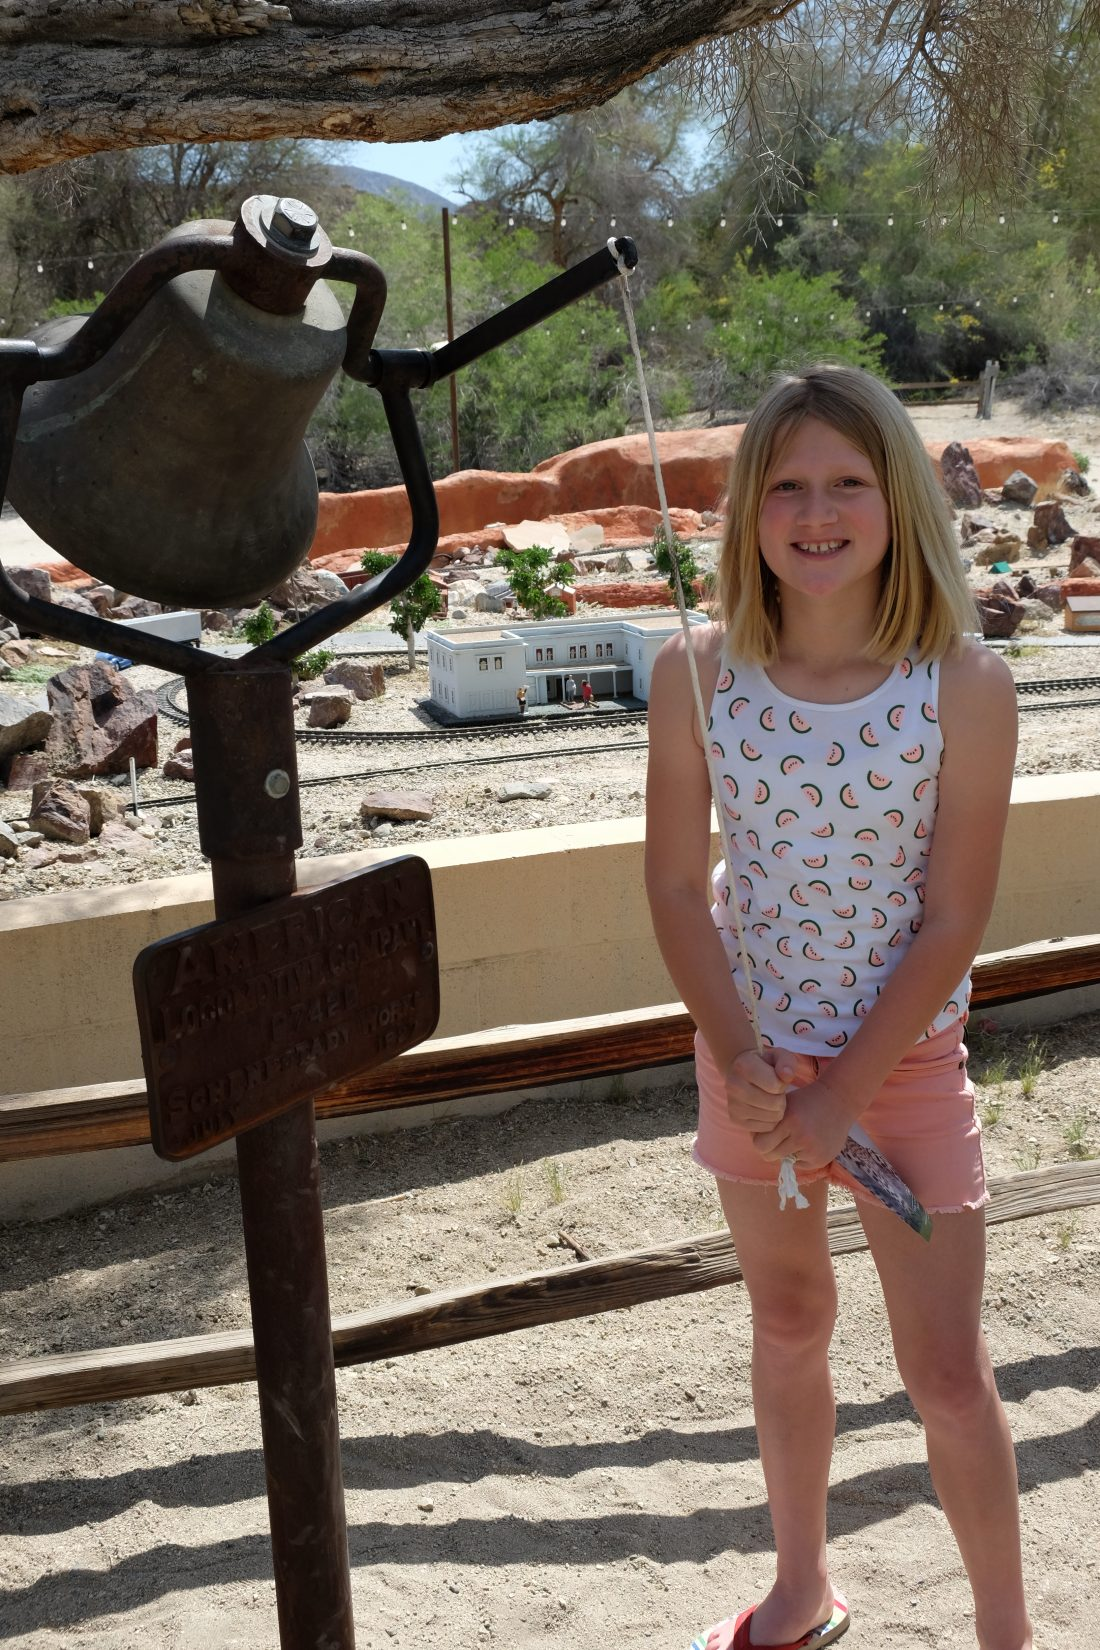 Ringing the signal bell at the Living Desert. Palm Springs